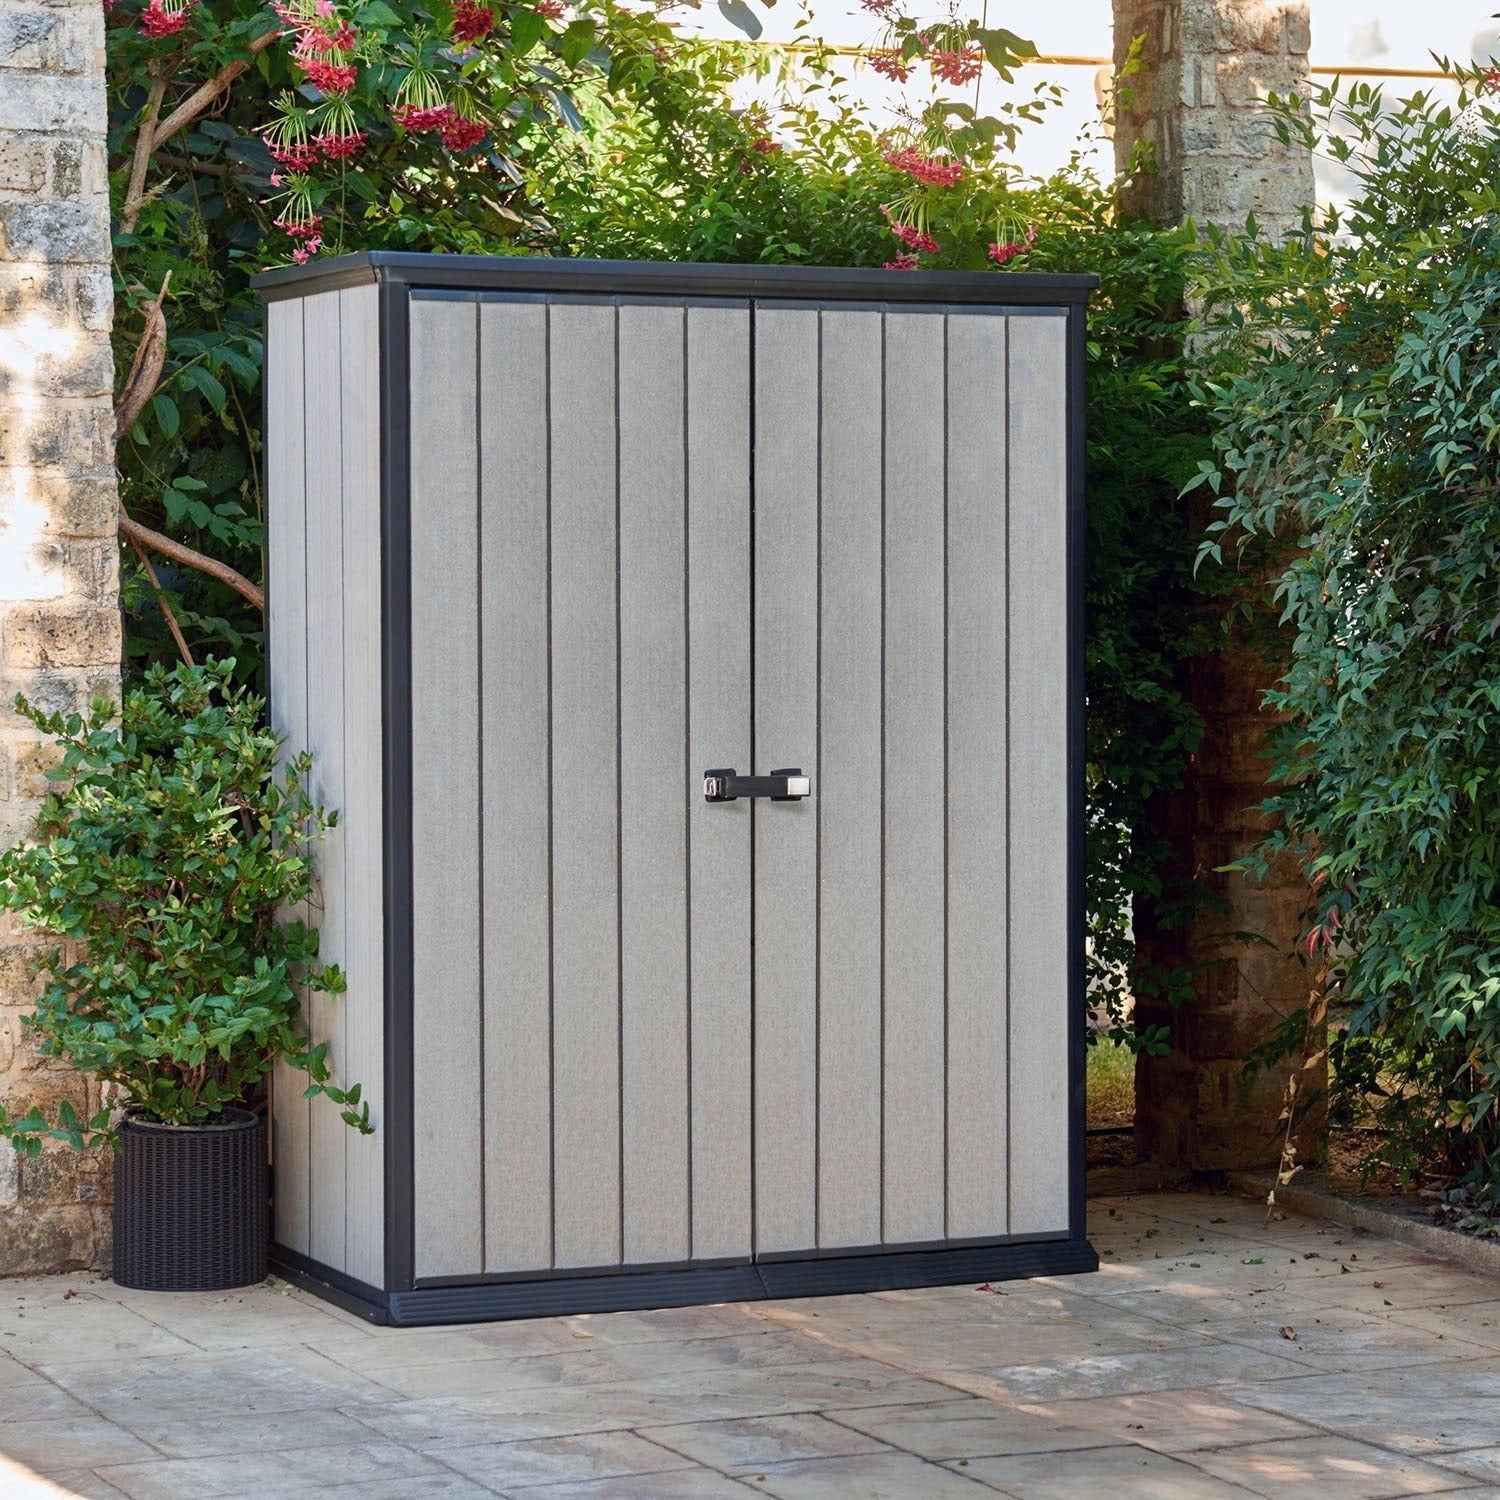 Keter High Store Grey Wood Look Outdoor Vertical Garden Storage Shed